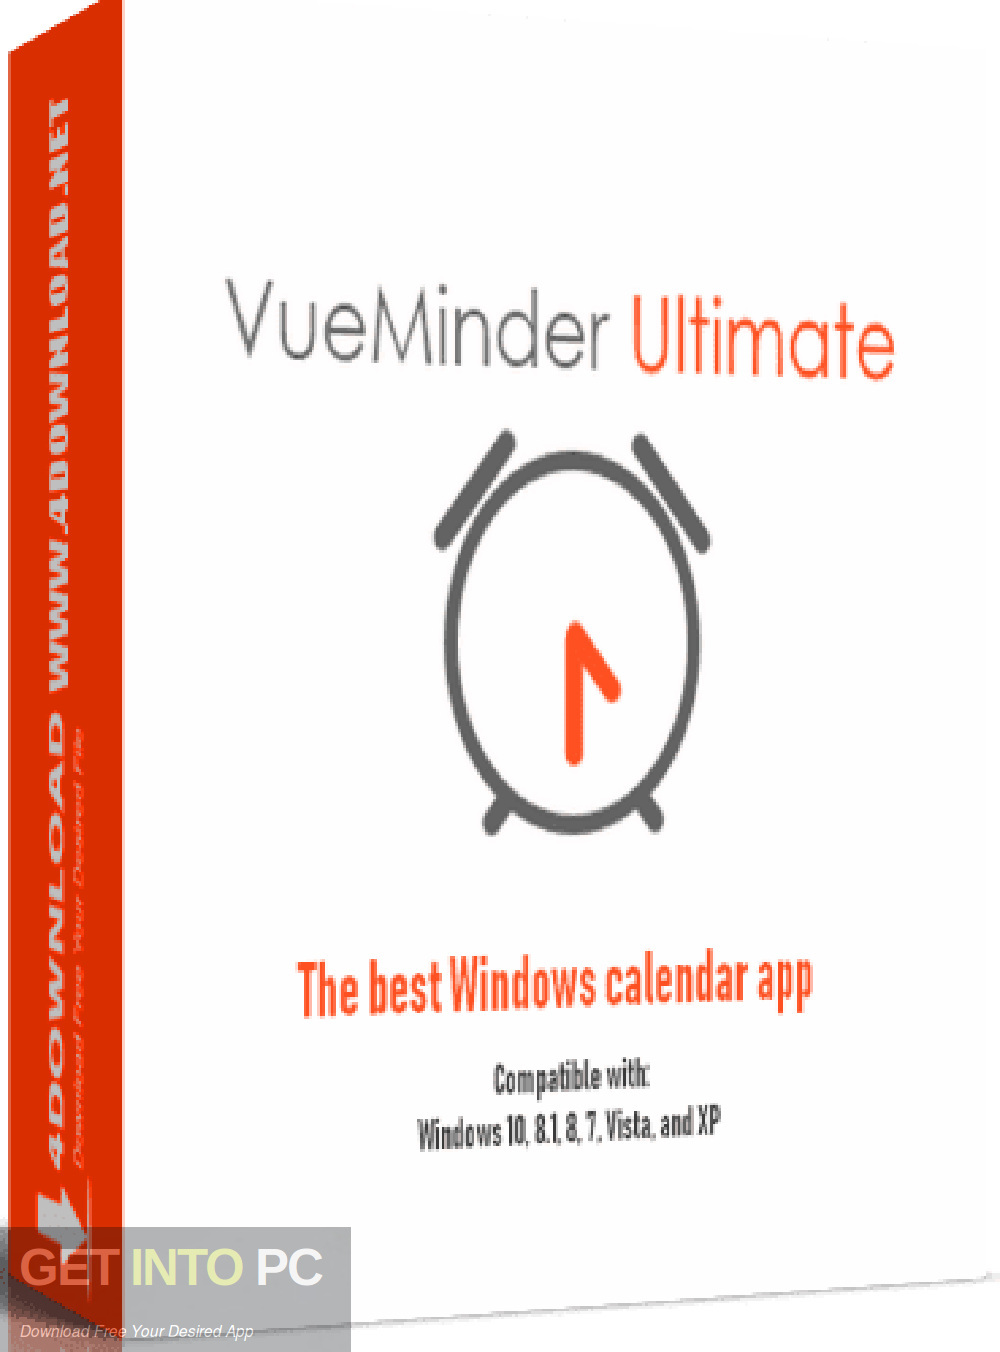 VueMinder Ultimate 2020 Free Download-GetintoPC.com